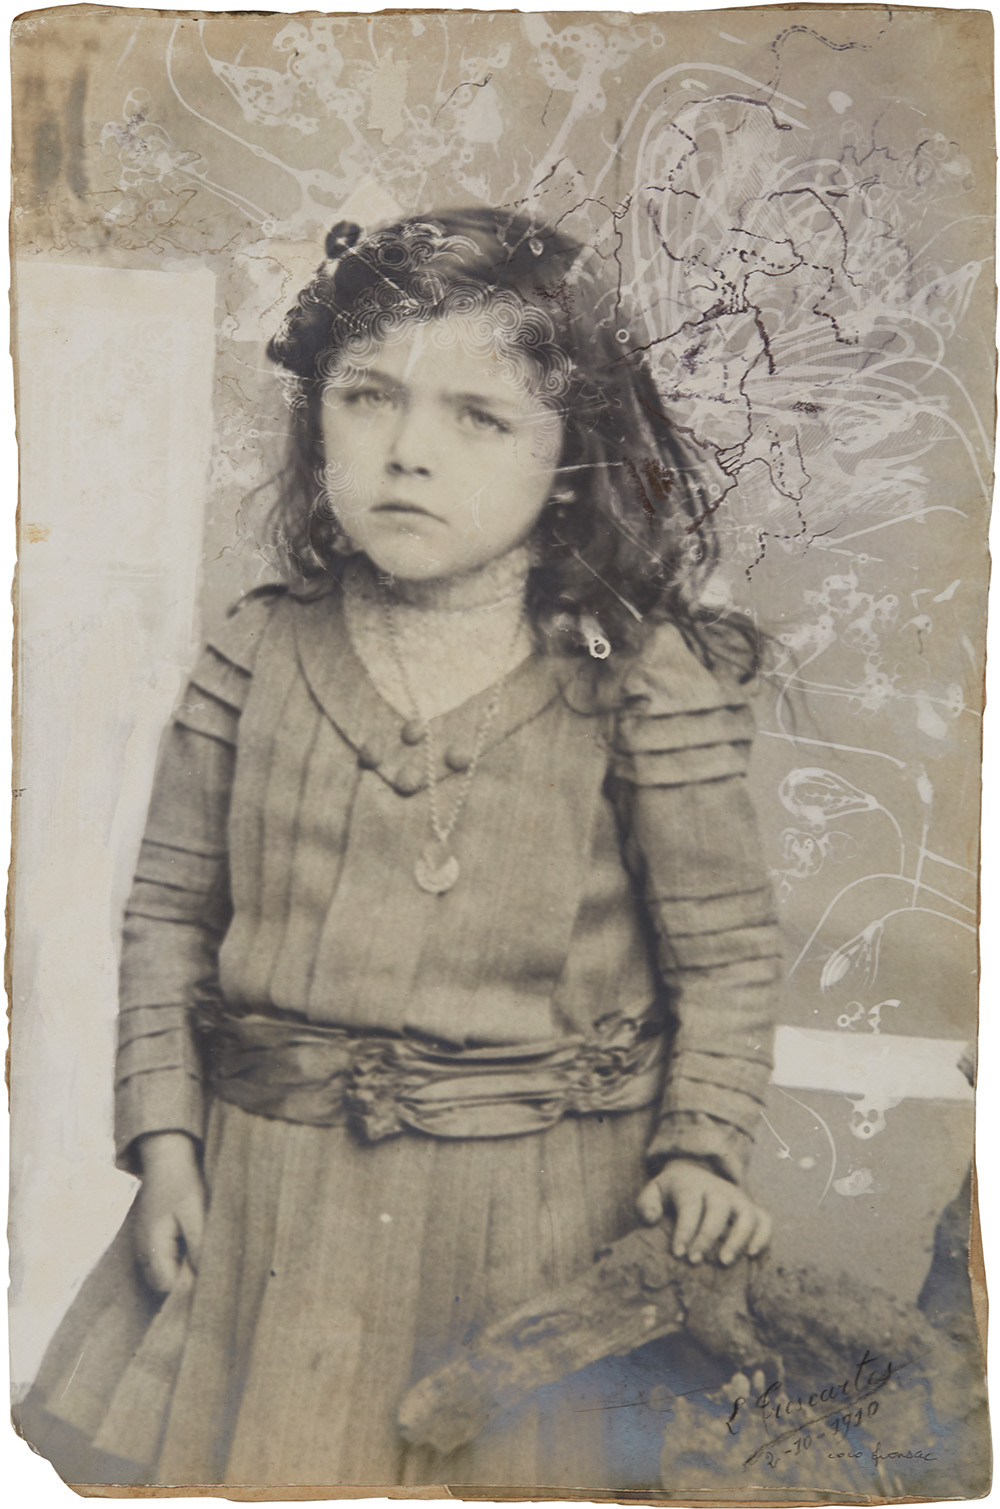 Coco Fronsac  Spiritualist Photo Series  , 1985/2010 Ink, etching on vintage photograph 14.06 x 9.17 inches 35.7 x 23.3 cm CoF 12